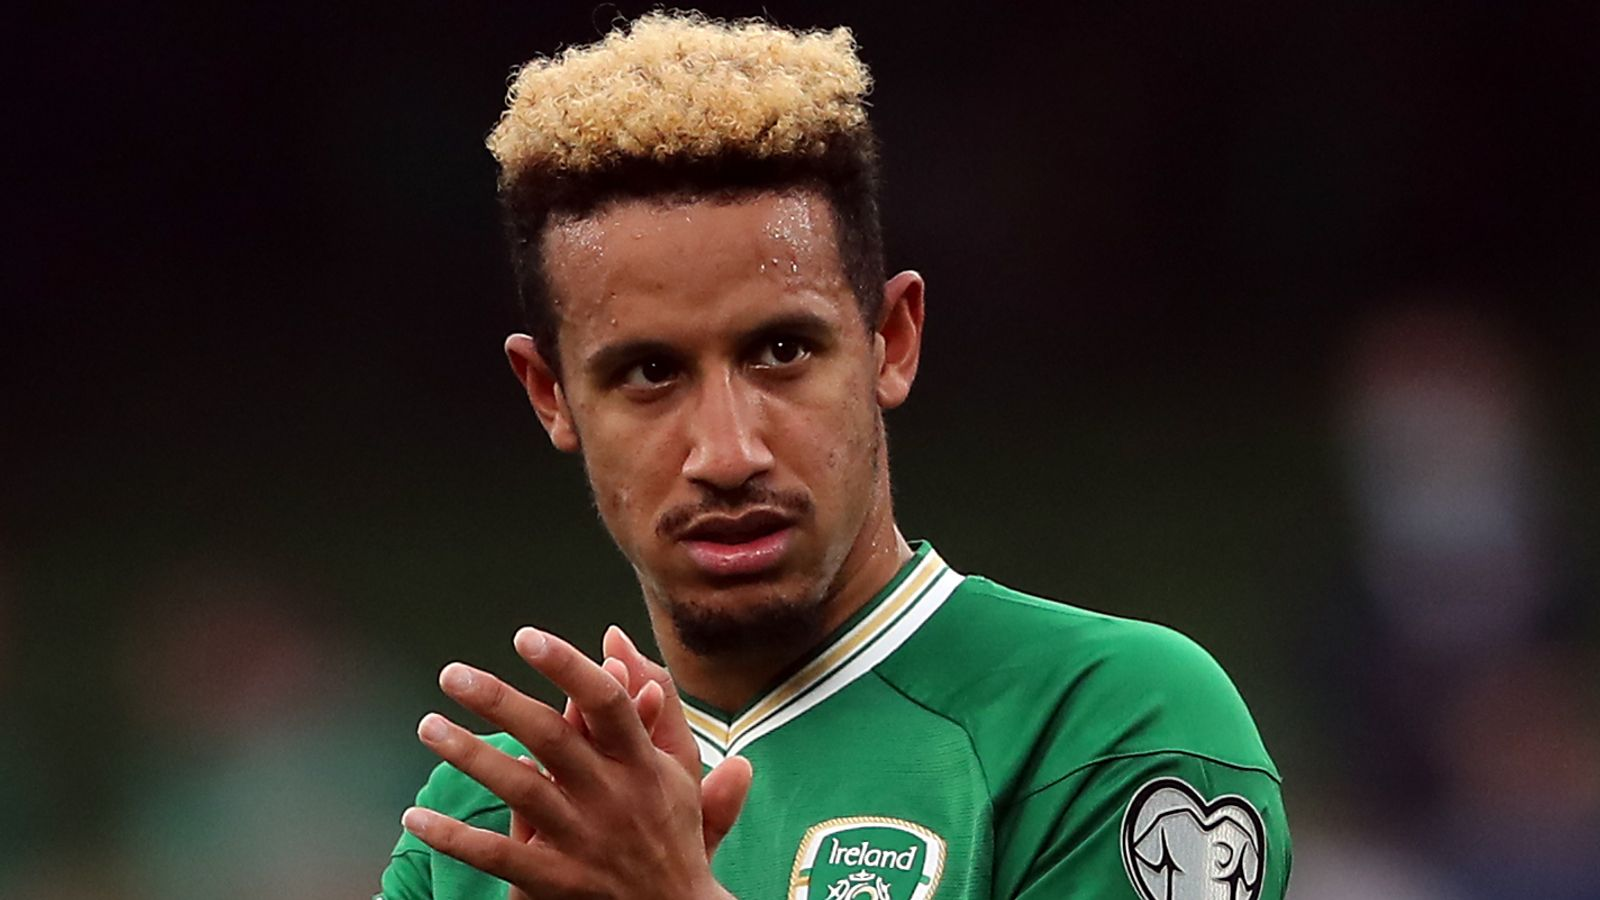 Callum Robinson: Republic of Ireland international speaks on decision not to be vaccinated against Covid-19